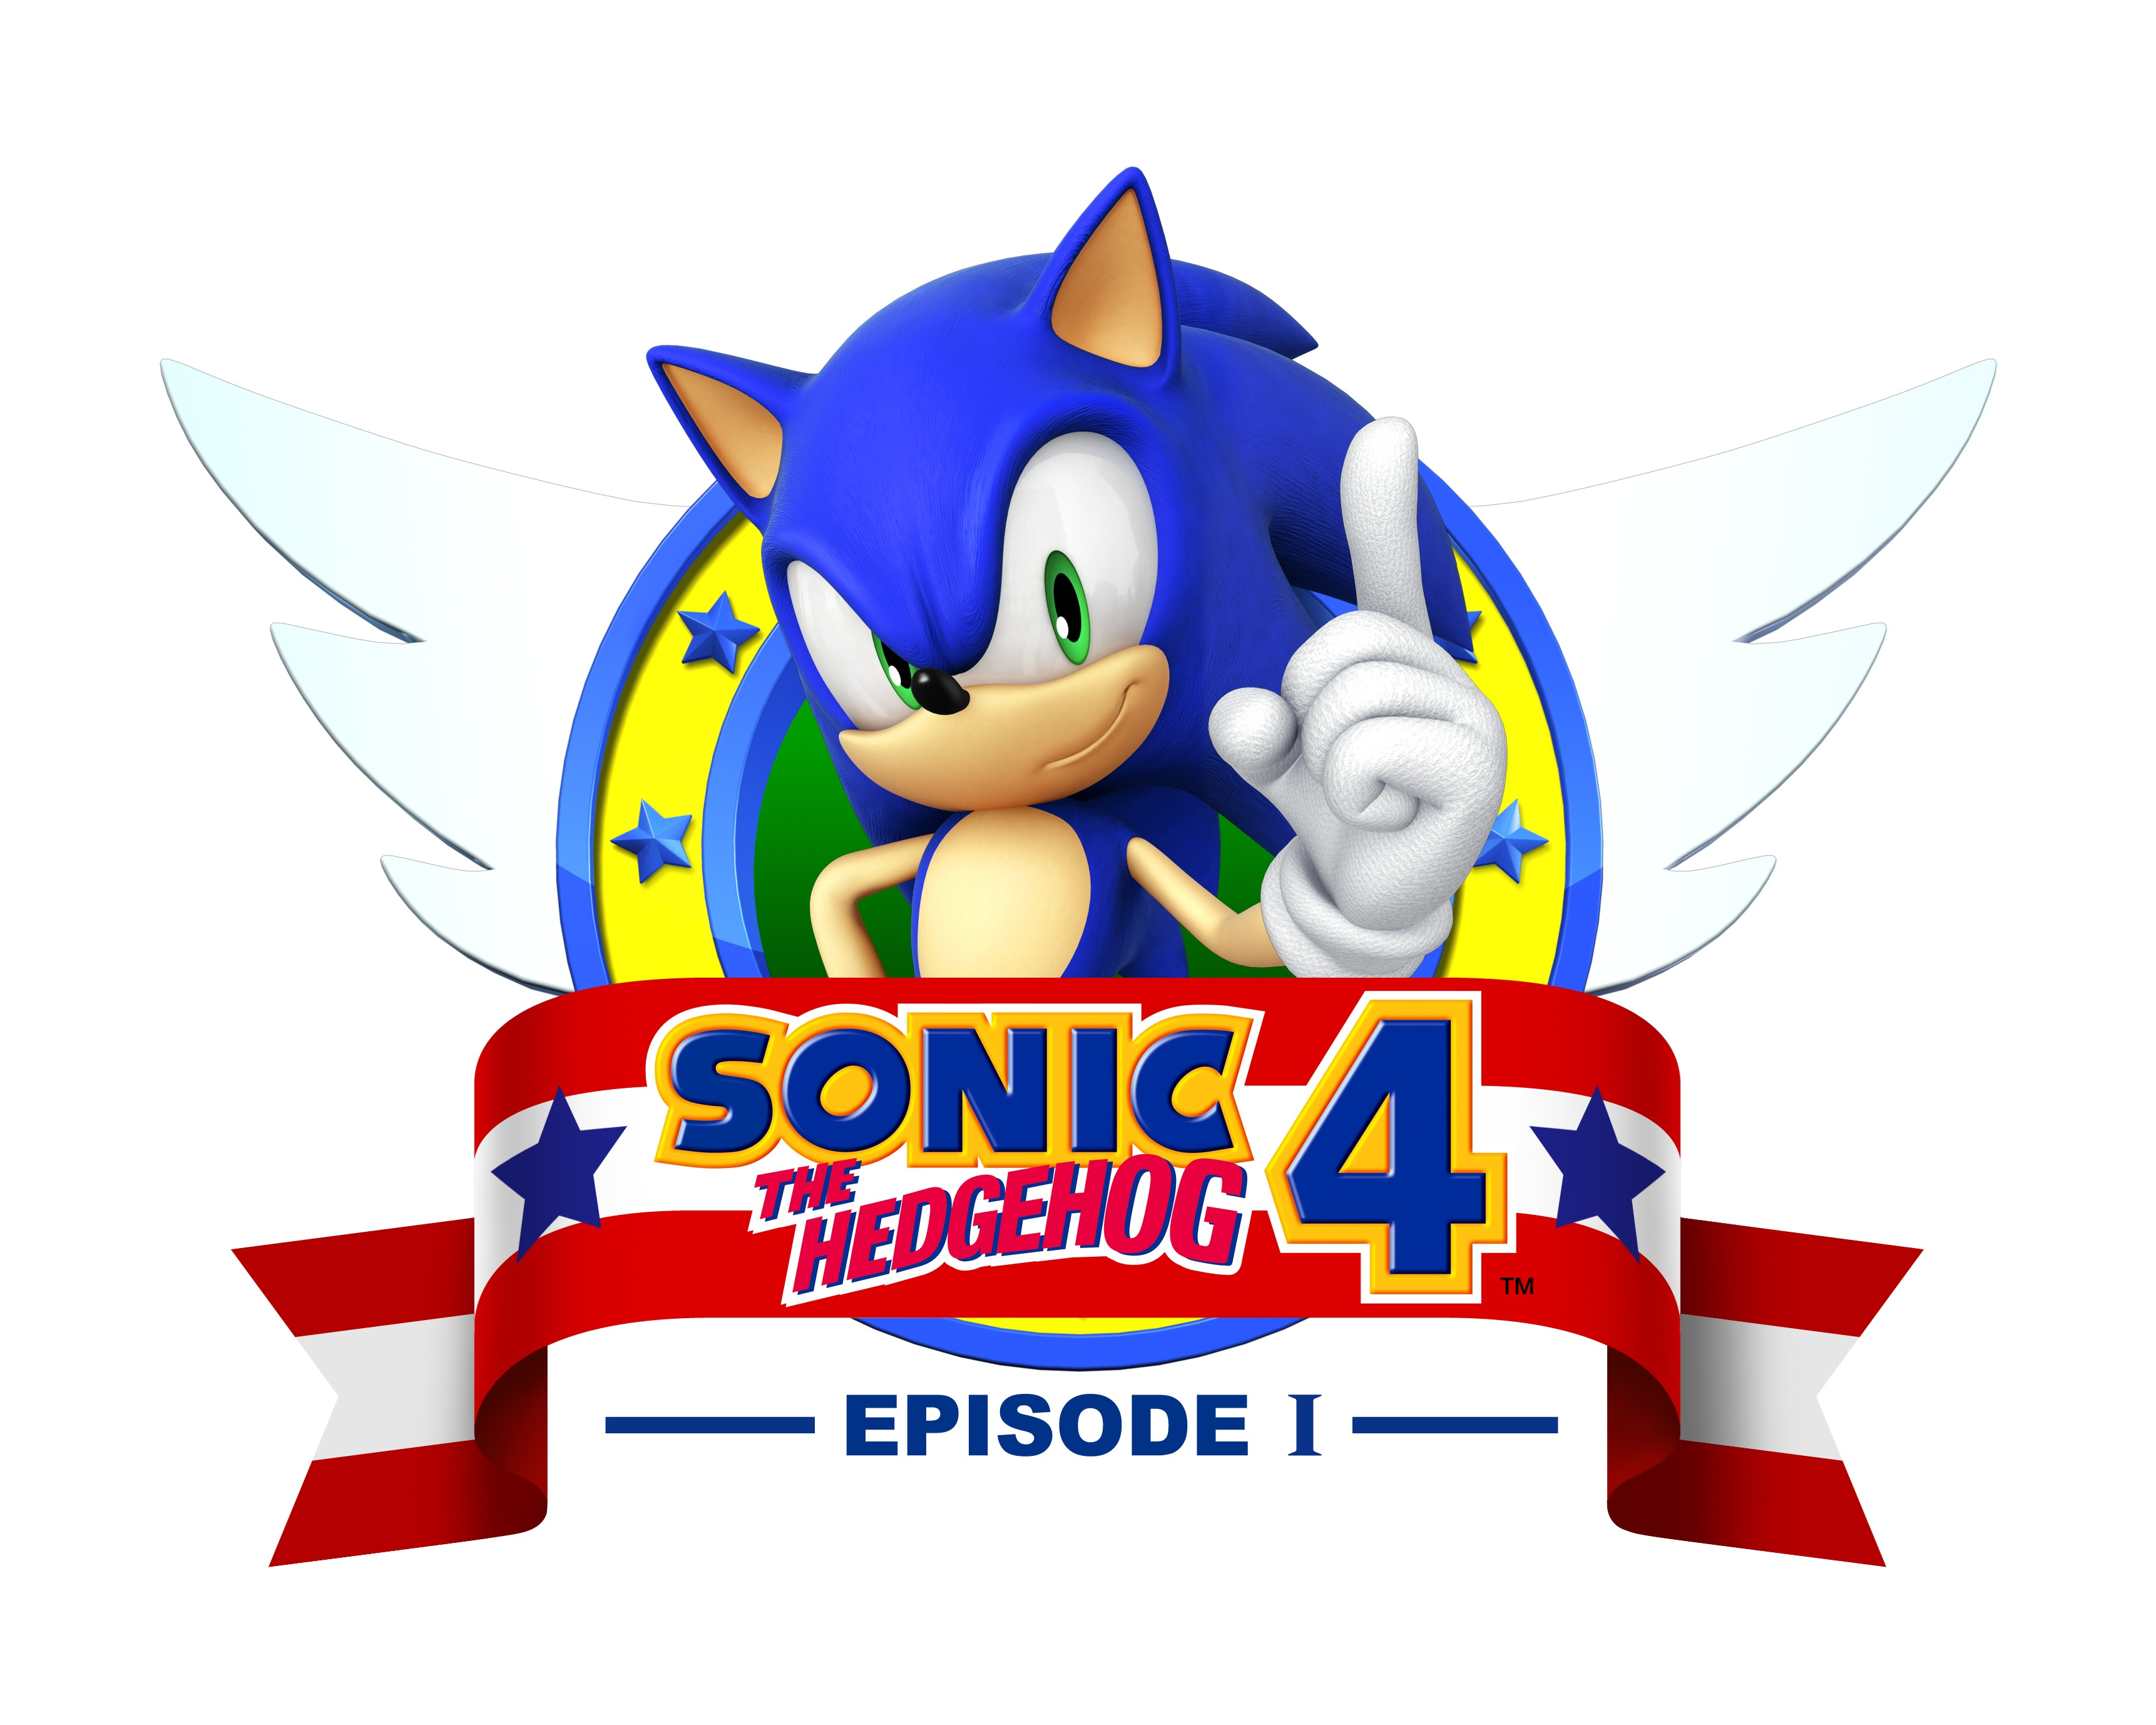 Hands On With Upcoming Sonic 4 Episode 1 This Is What Weve All